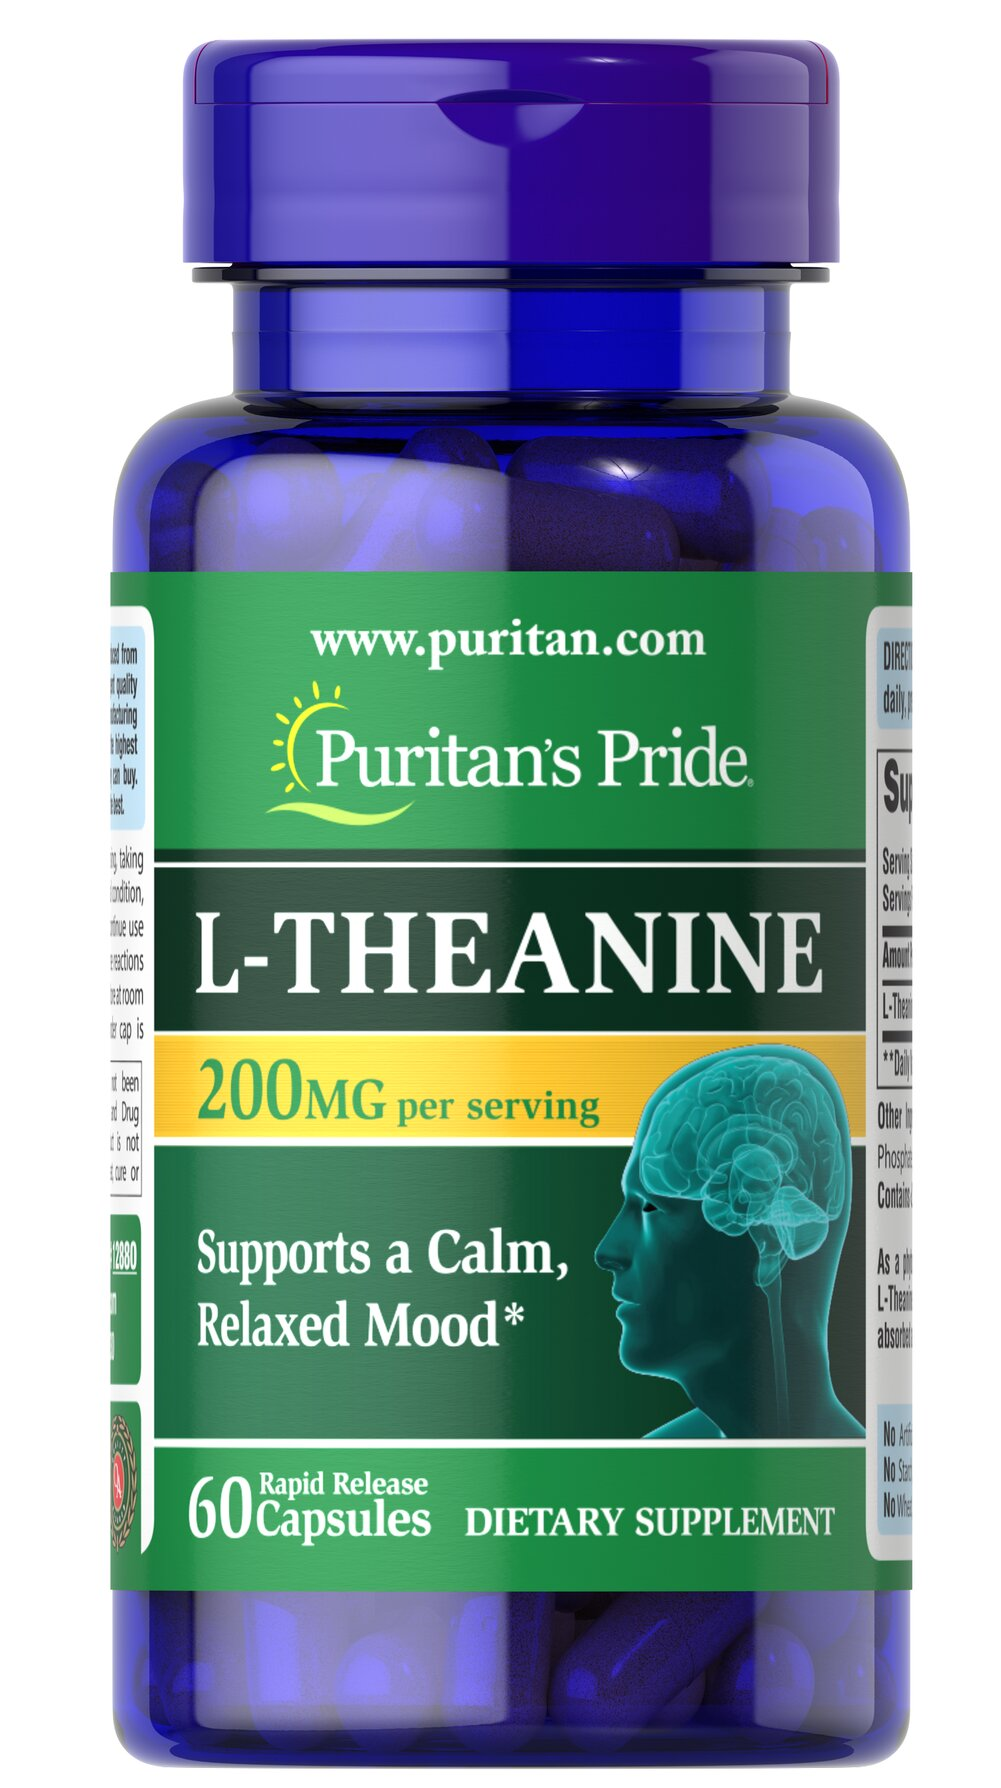 L-Theanine 100 mg <p>A close relative of Glutamate, studies indicate that L-Theanine interacts with the neurotransmitter, GABA (gammaminobutyrate).** GABA, known for its importance in nervous system functioning, works with the mood centers of the brain.** Studies in Japan show that L-Theanine helps support the body's ability to deal with PMS and occasional, everyday anxiety.**</p> 60 Capsules 100 mg $16.99